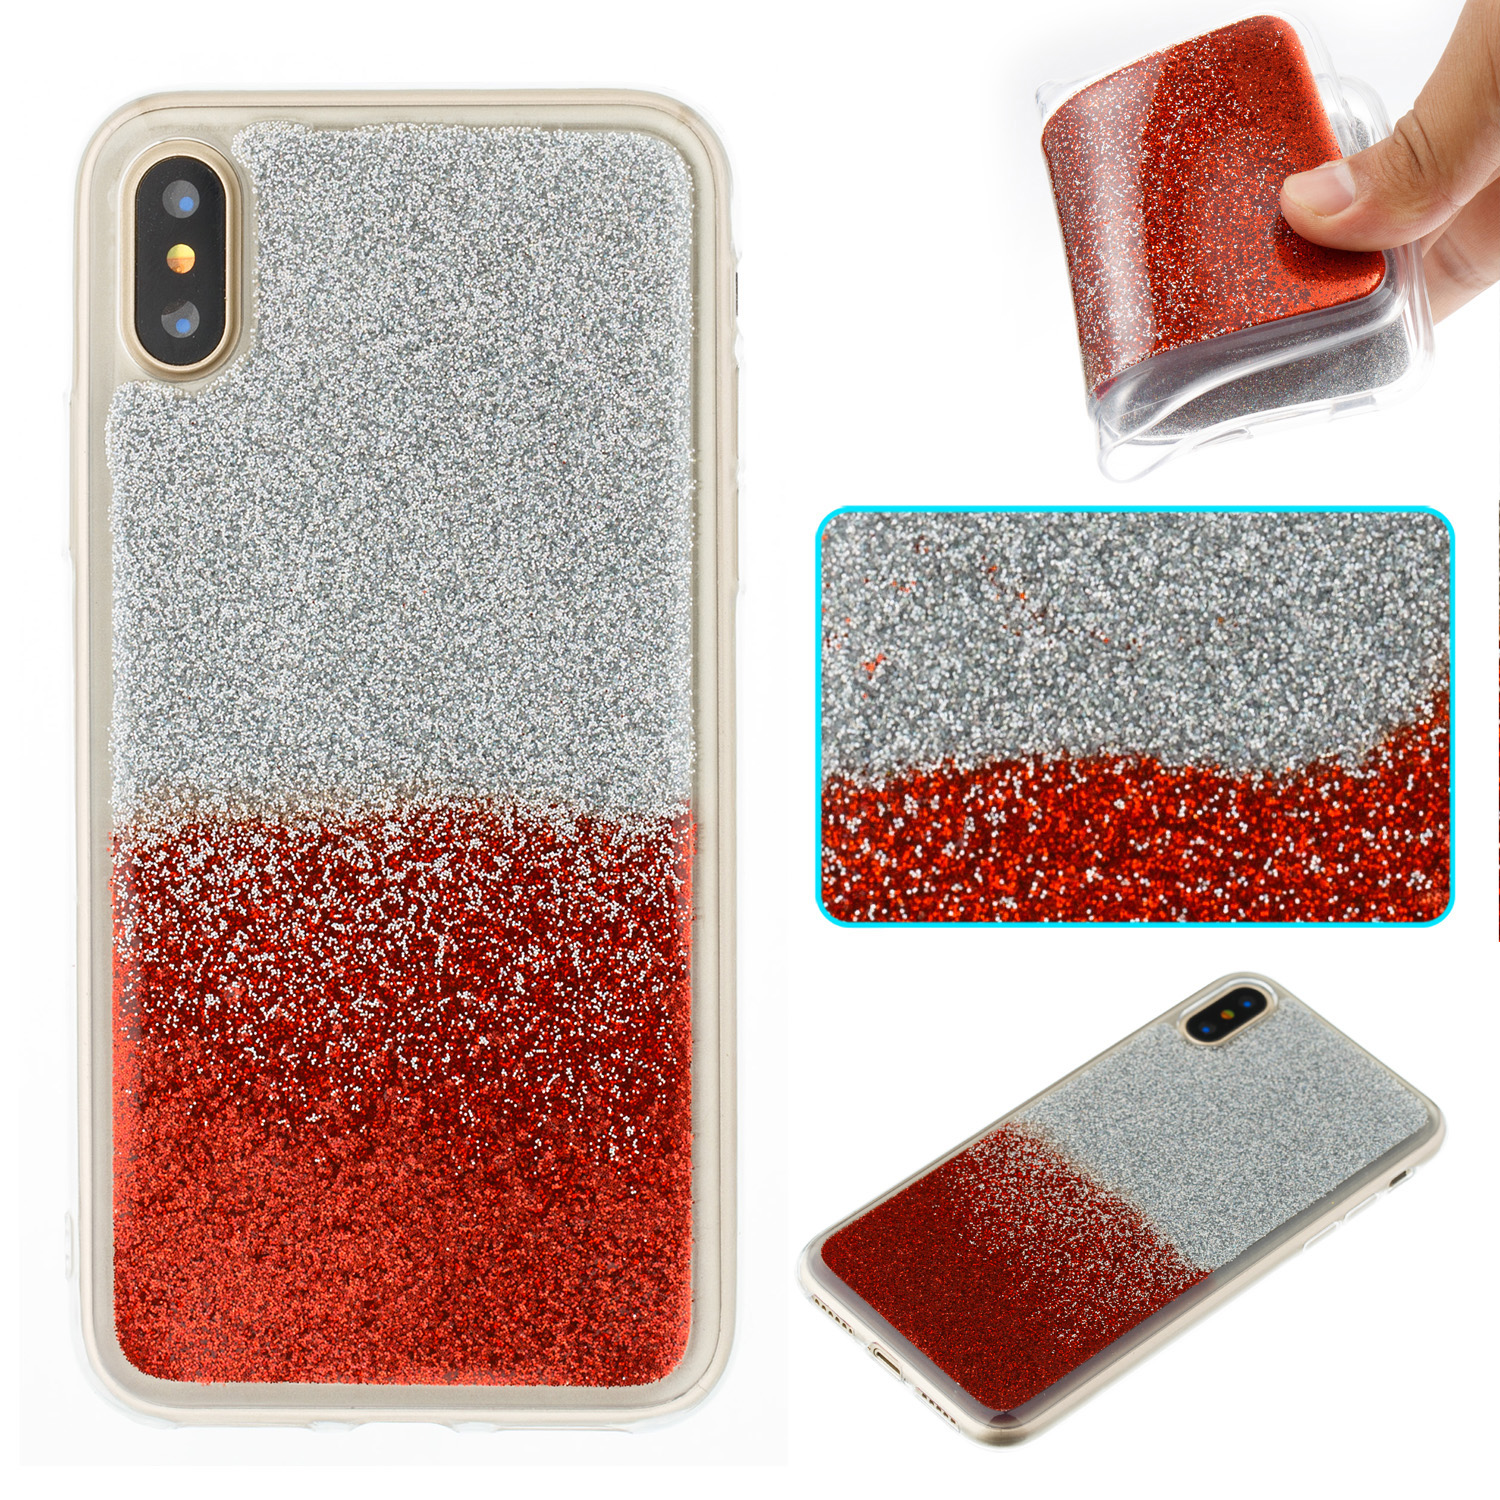 Squishy Gel Iphone Case : Bling Glitter Silicone Soft TPU Gel Phone Case Cover For iPhone X/8/7 Plus/6S/5S eBay